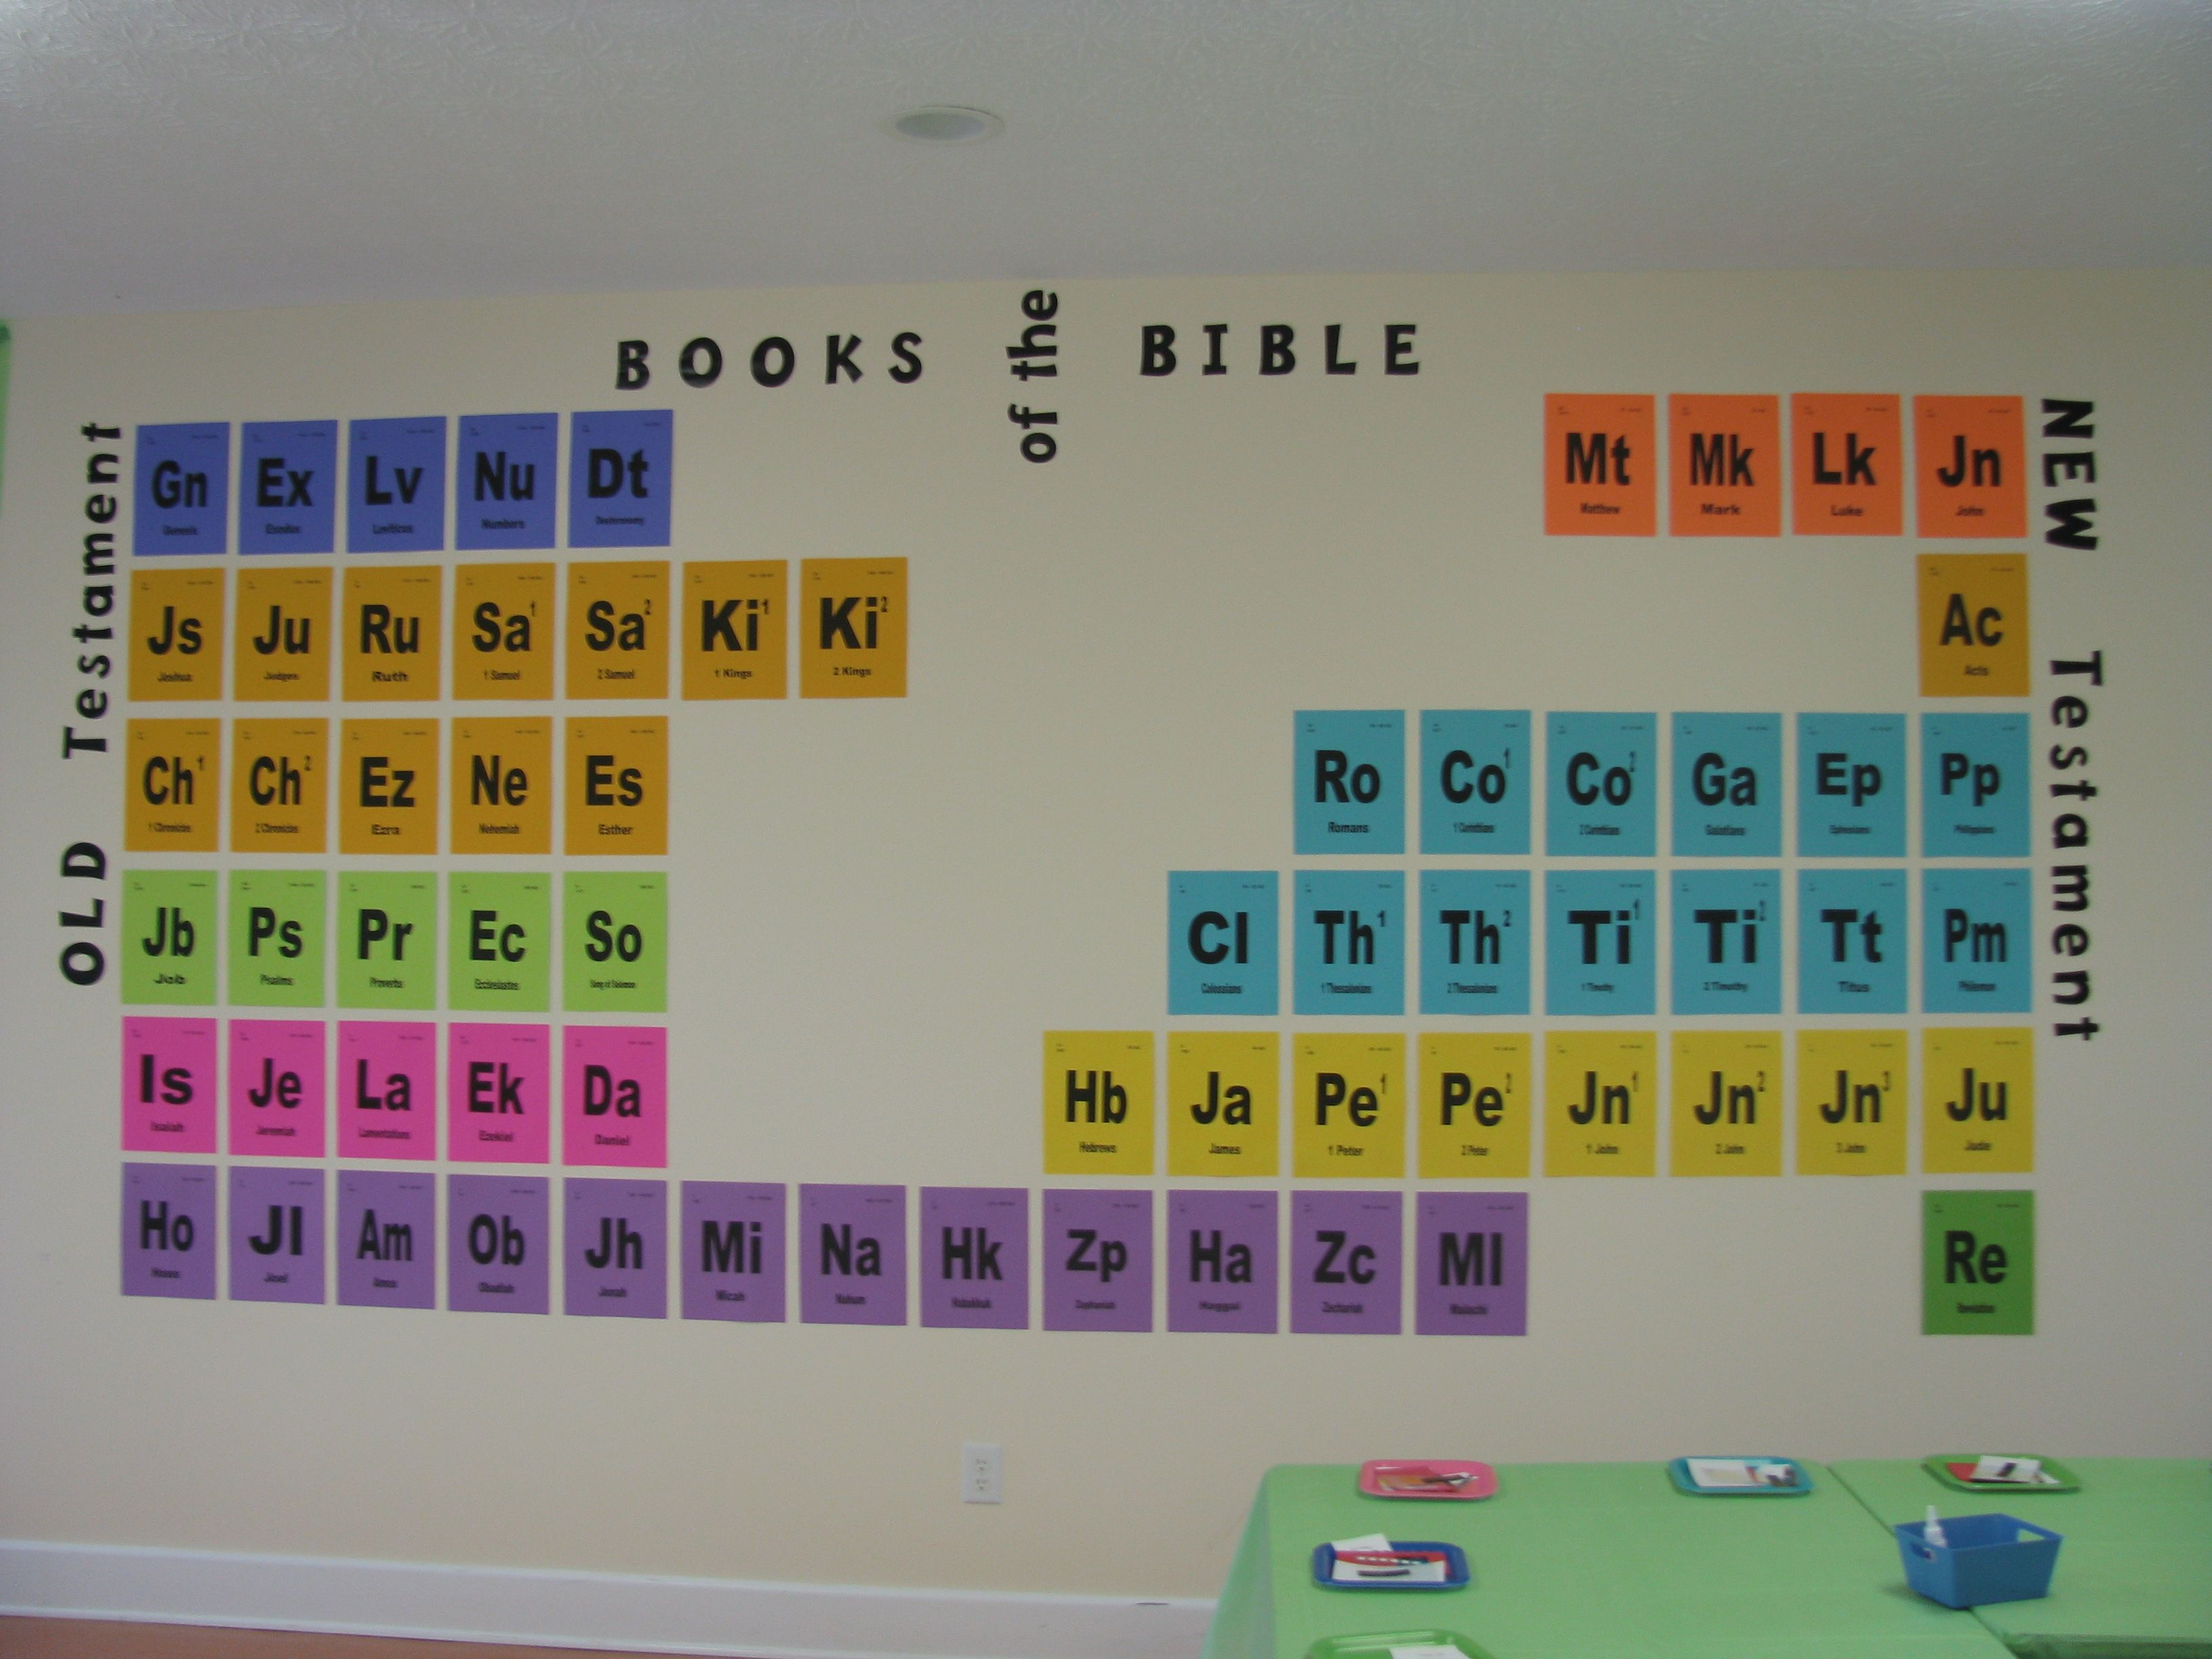 Periodic Table Style Books Of Bible